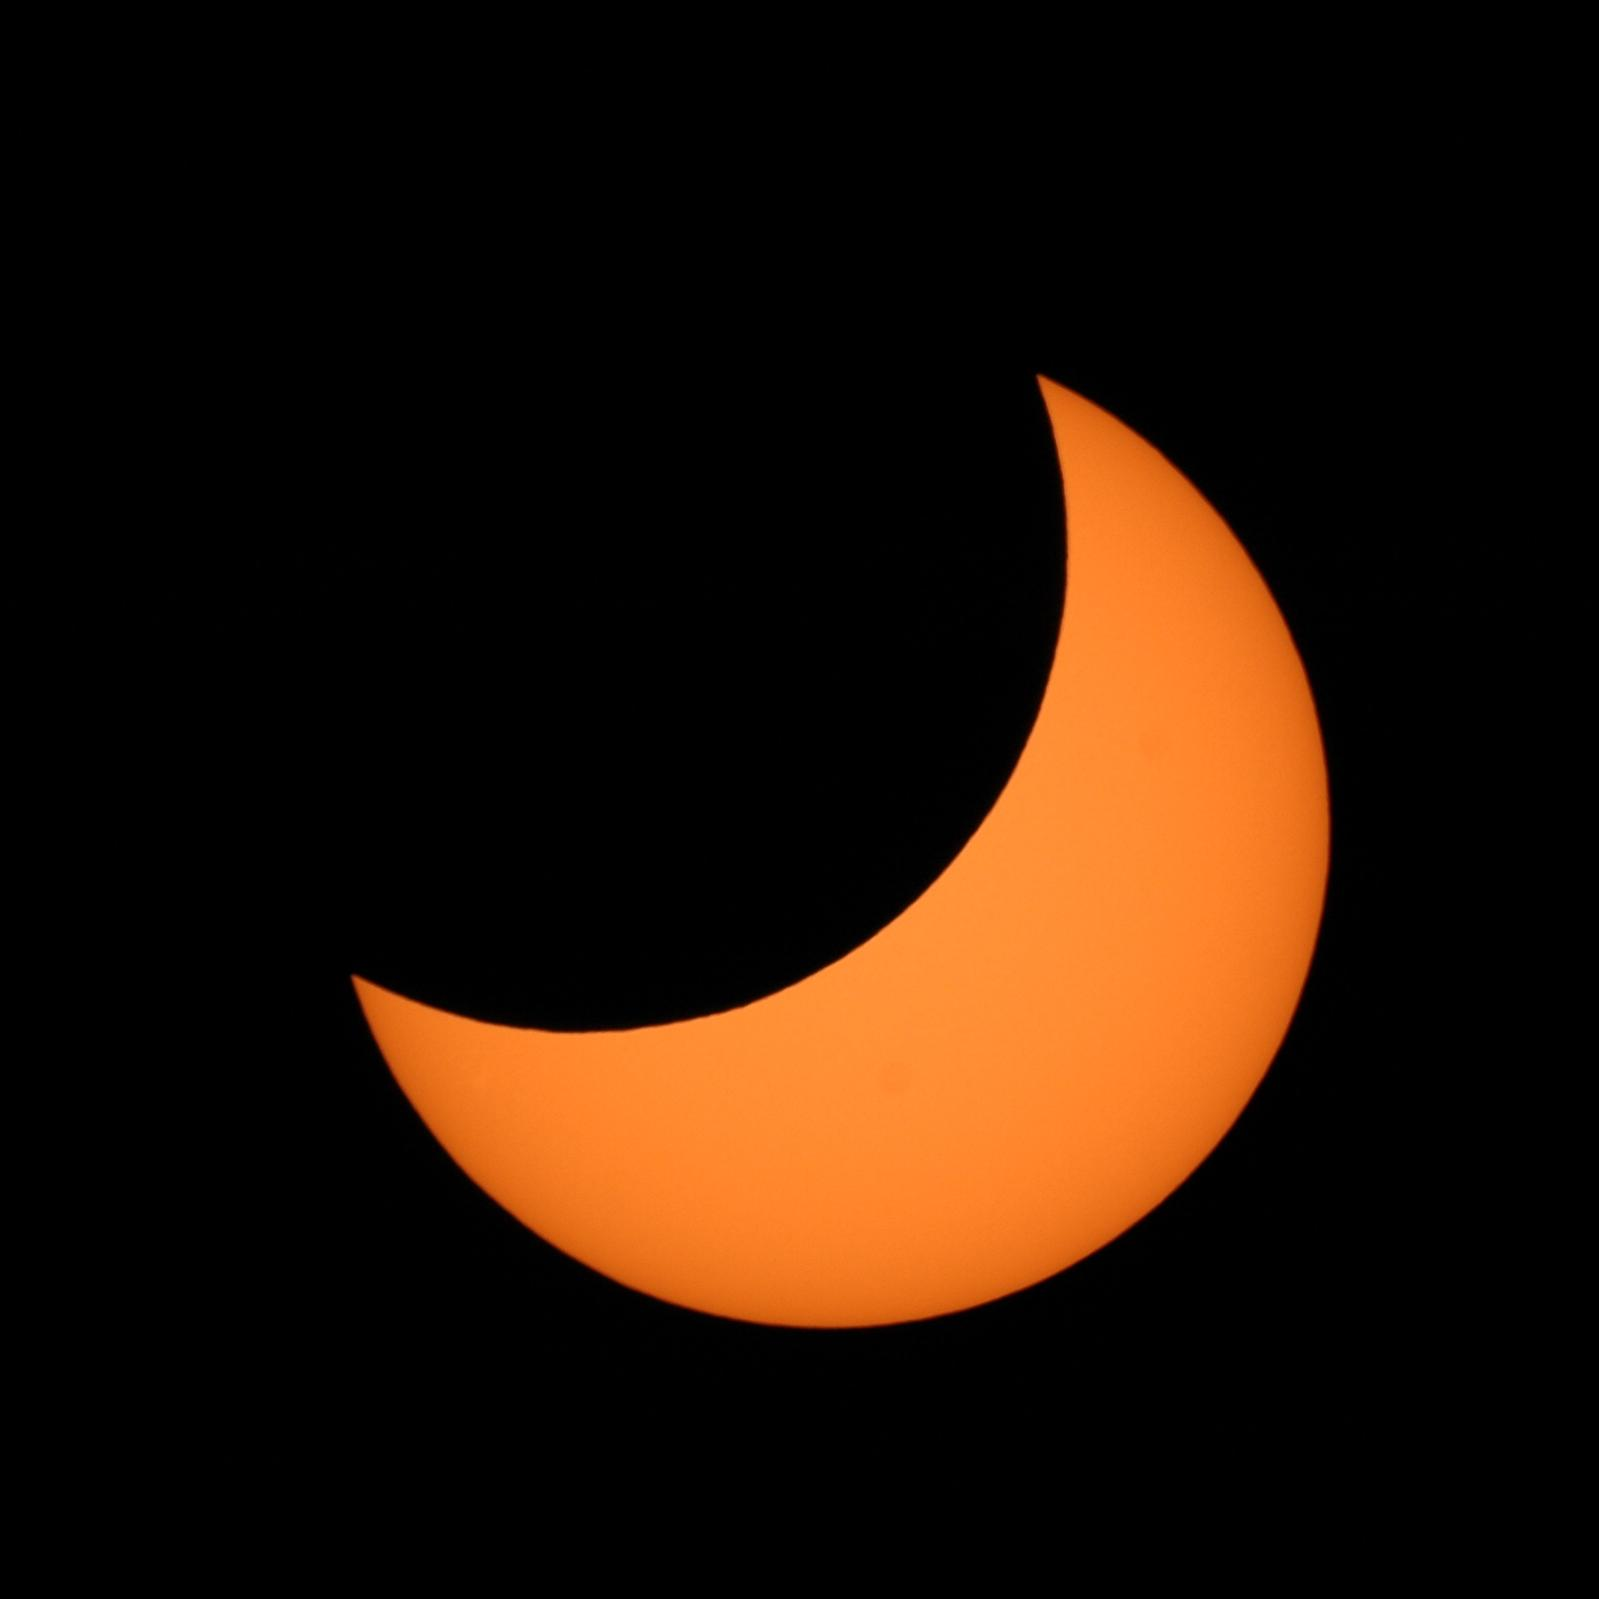 Solar eclipse wikipedia autos post for Ford motor credit com